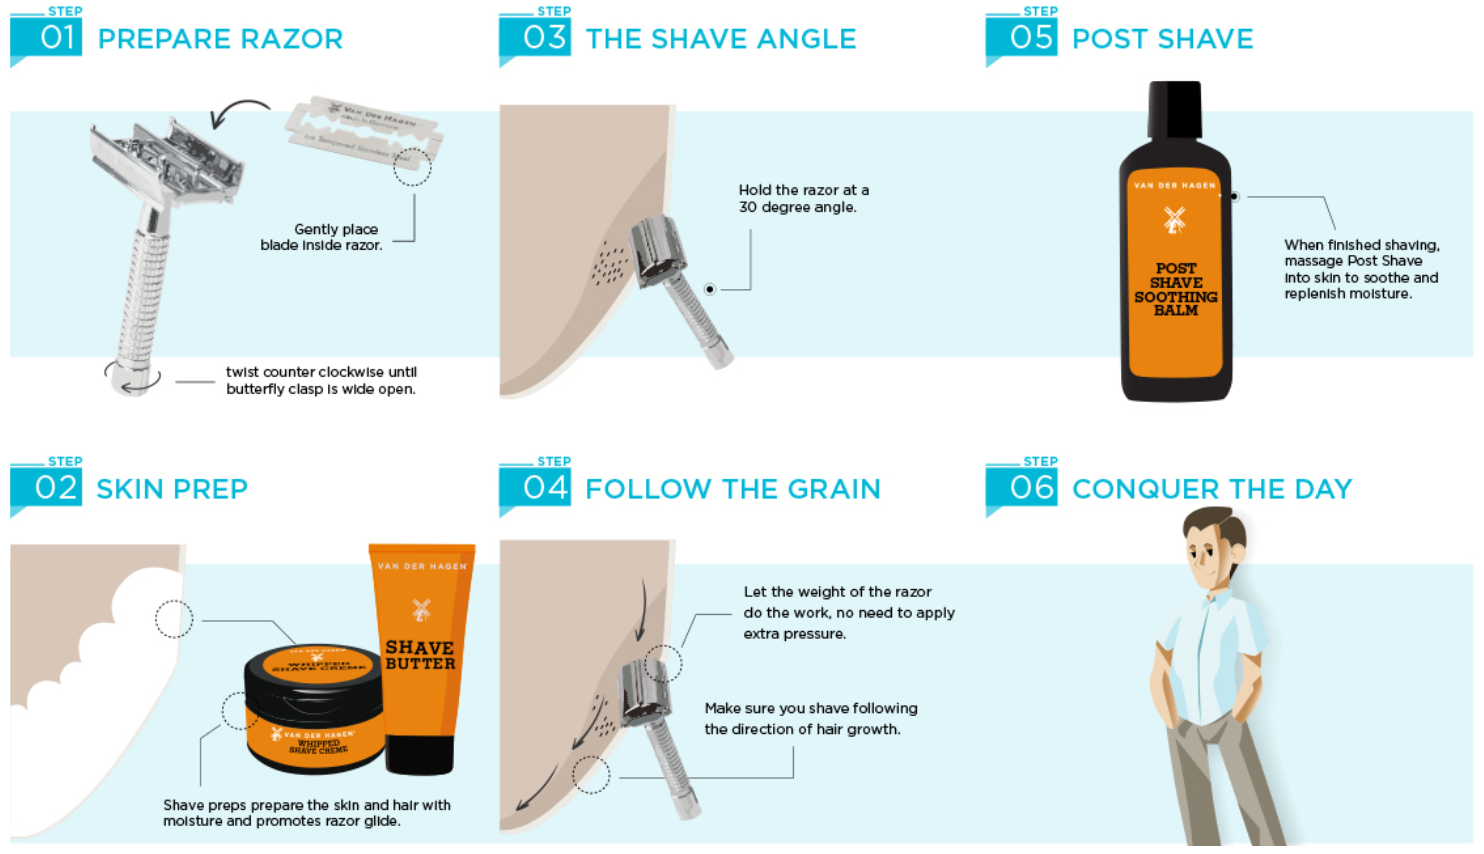 HOW TO USE A SAFETY RAZOR